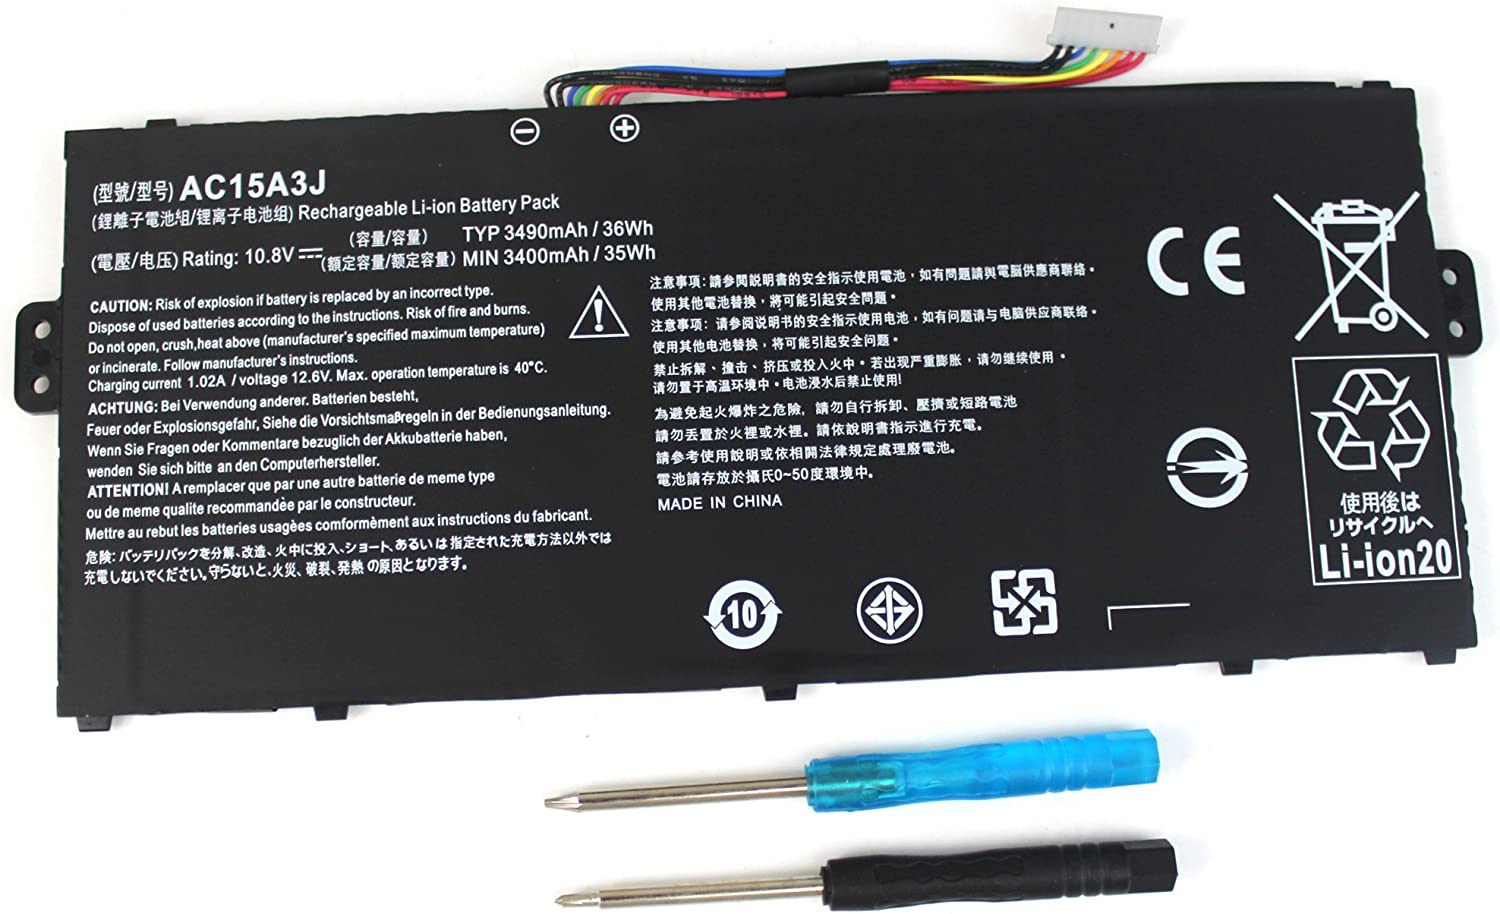 Shareway AC15A3J Replacement Laptop Battery for Acer Chromebook C738T 11 C735 CB3-131 R11 CB5-132T CB5-132T-C8KL Compatible P/N: AC15A8J KT.00303.017 [10.8V 3490mAh]